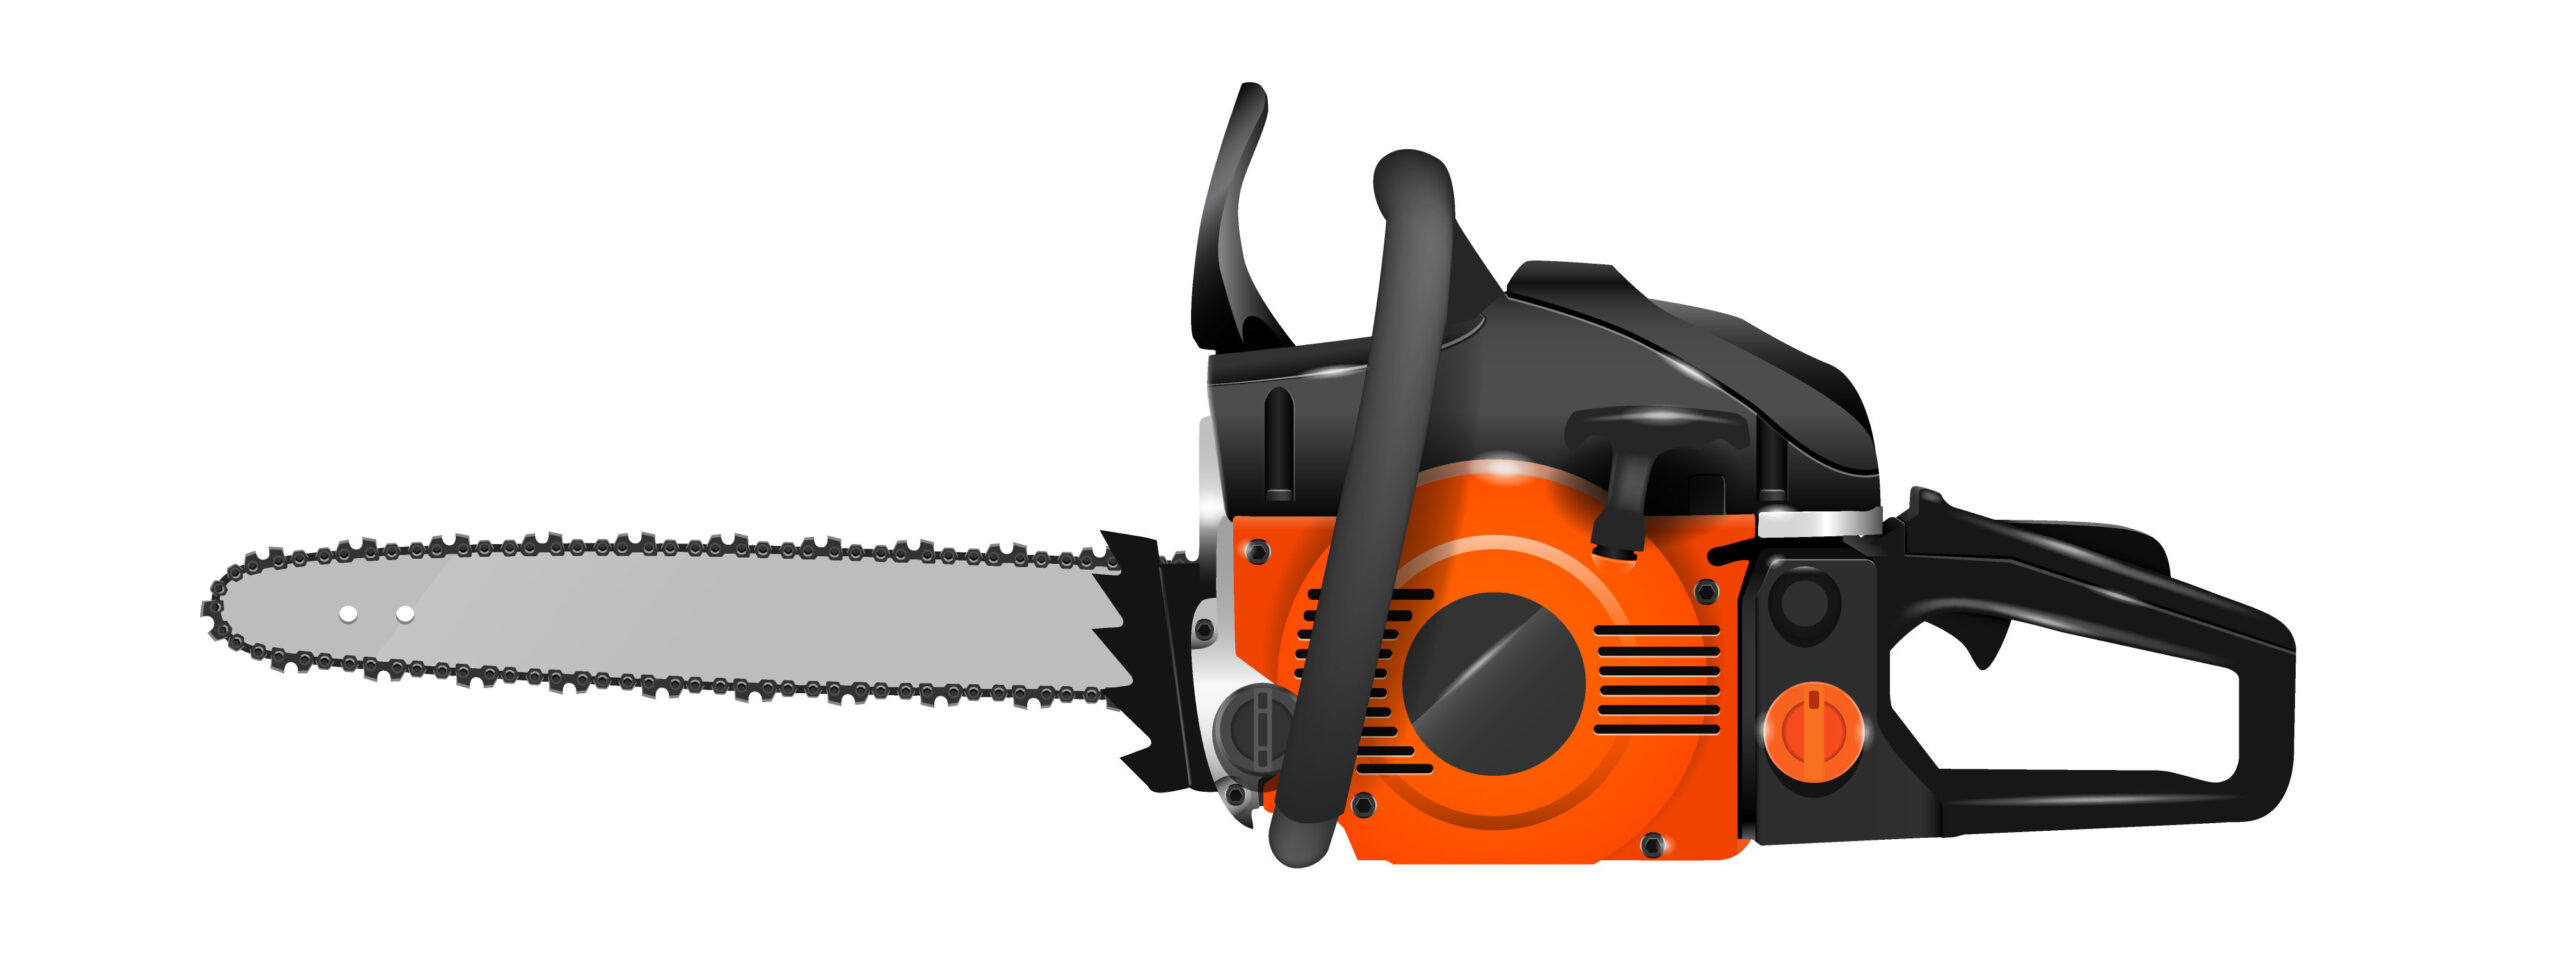 side view of chainsaw